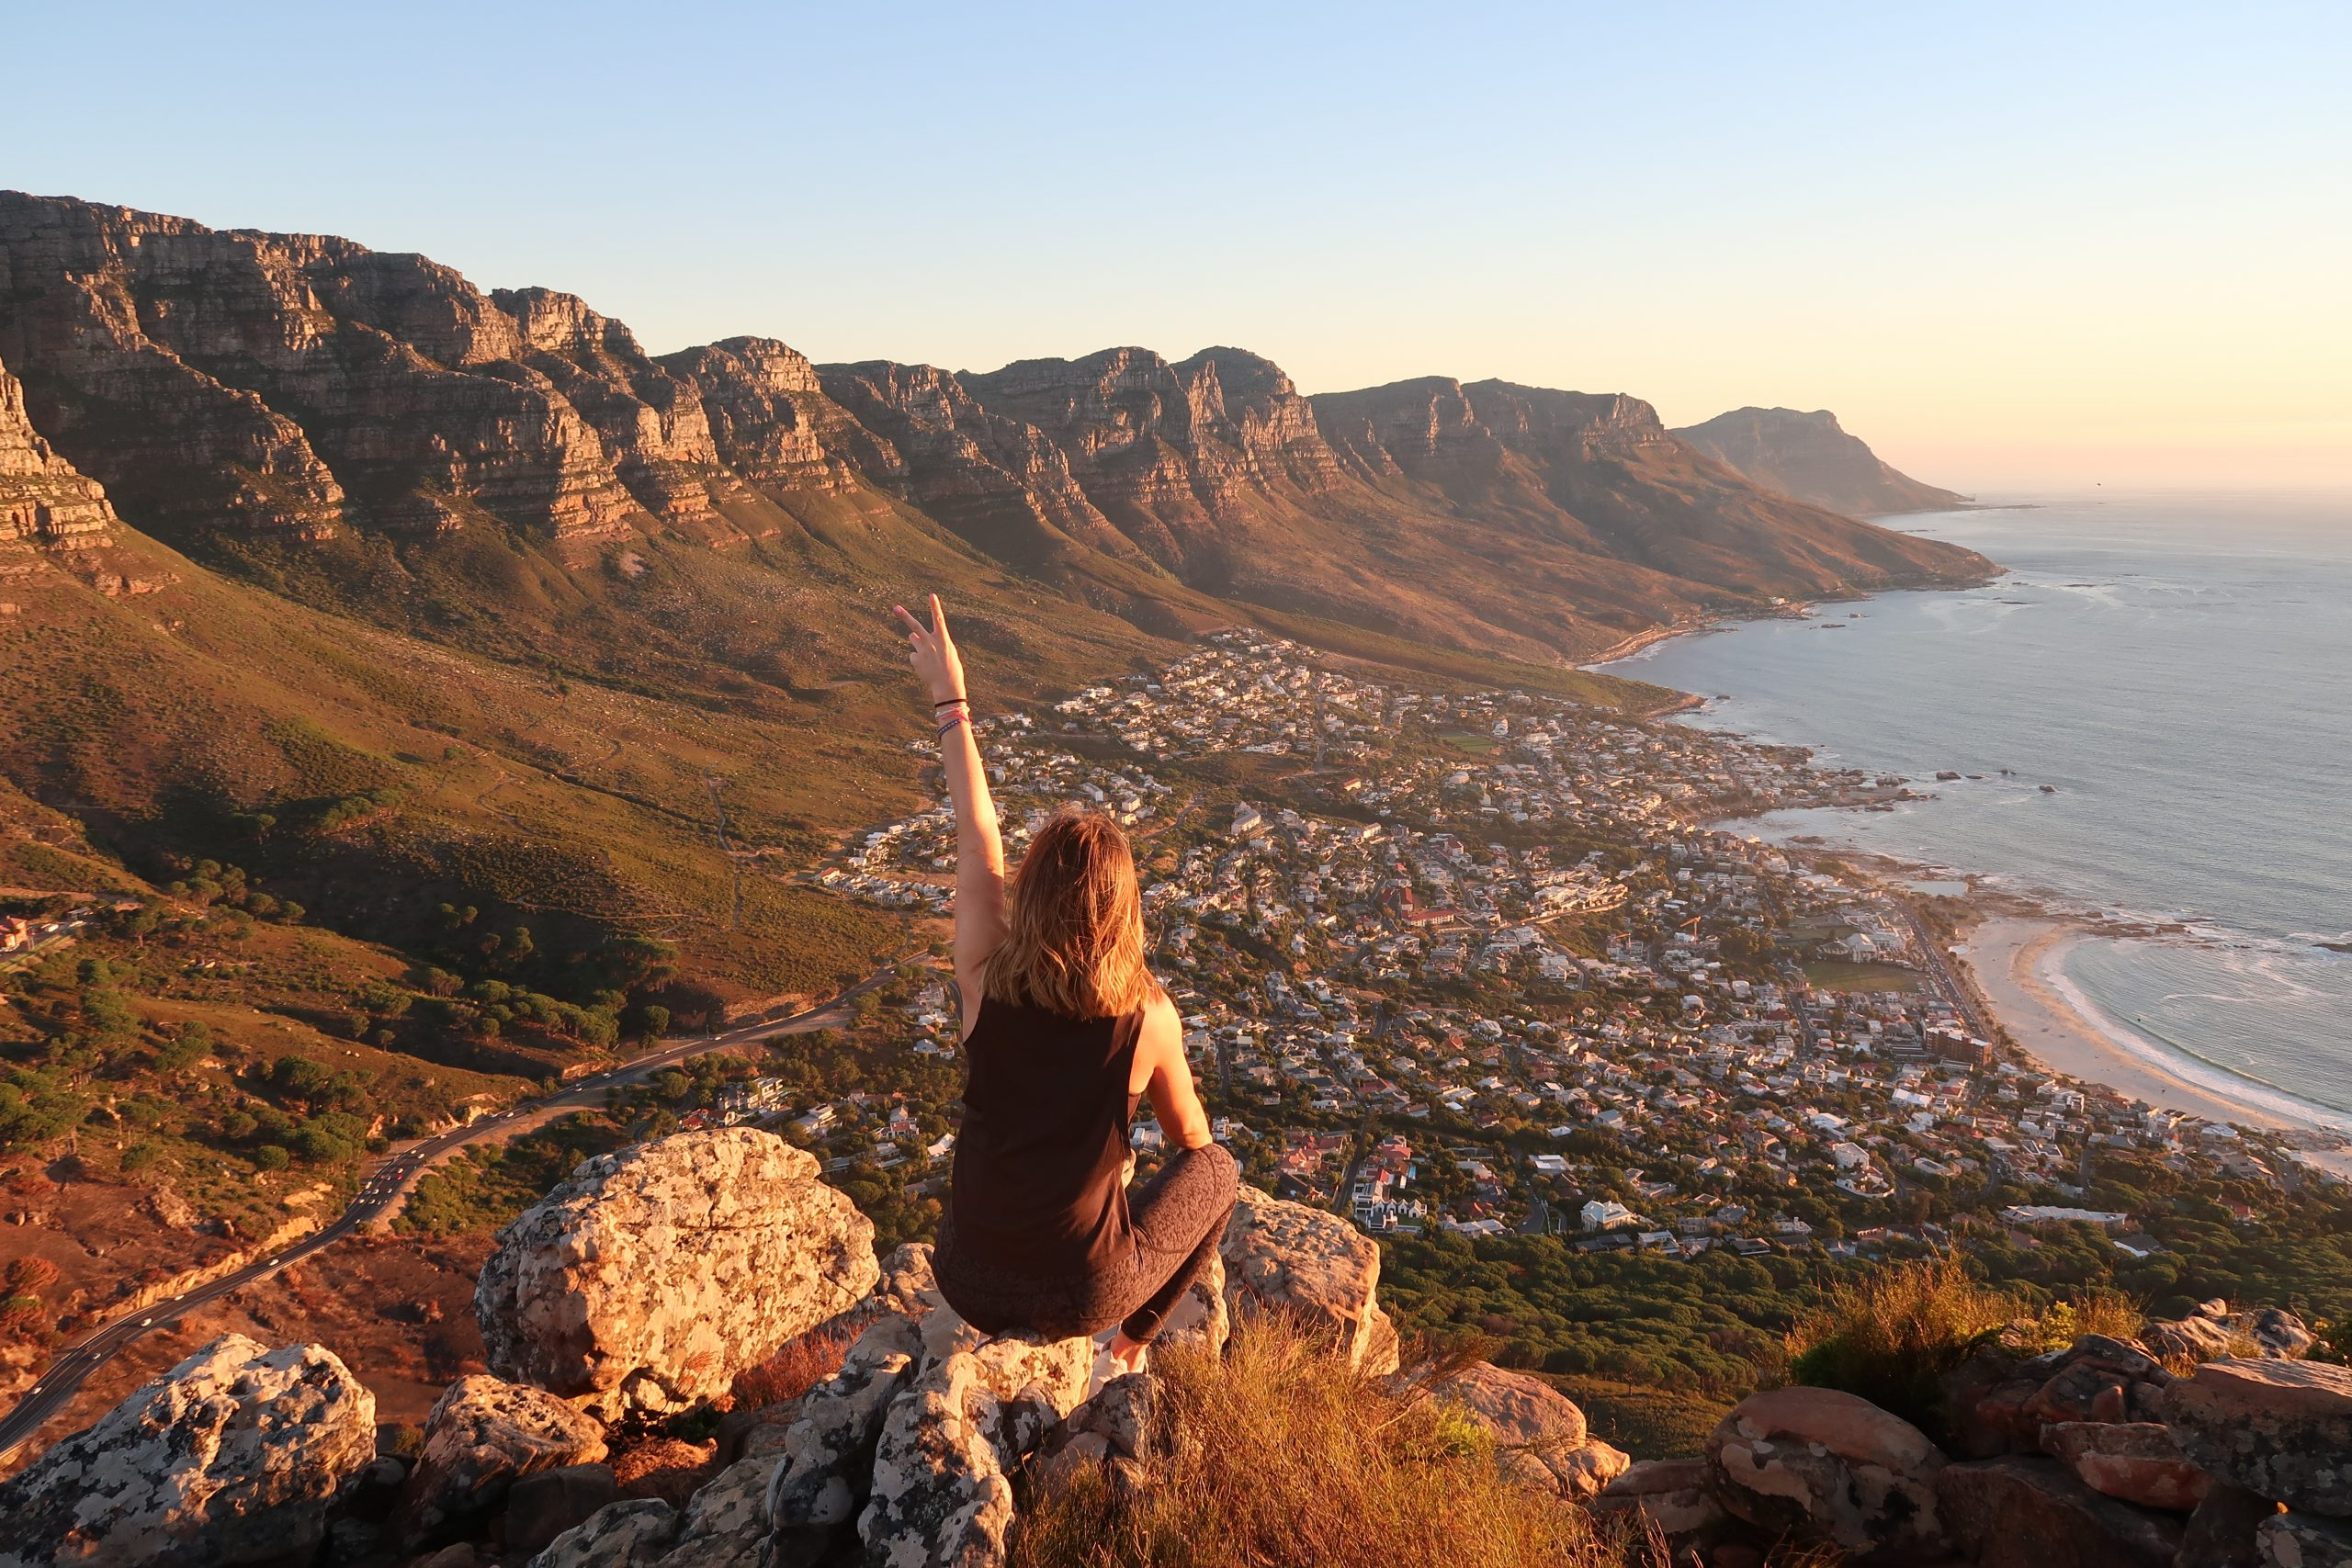 My Capetown travel guide